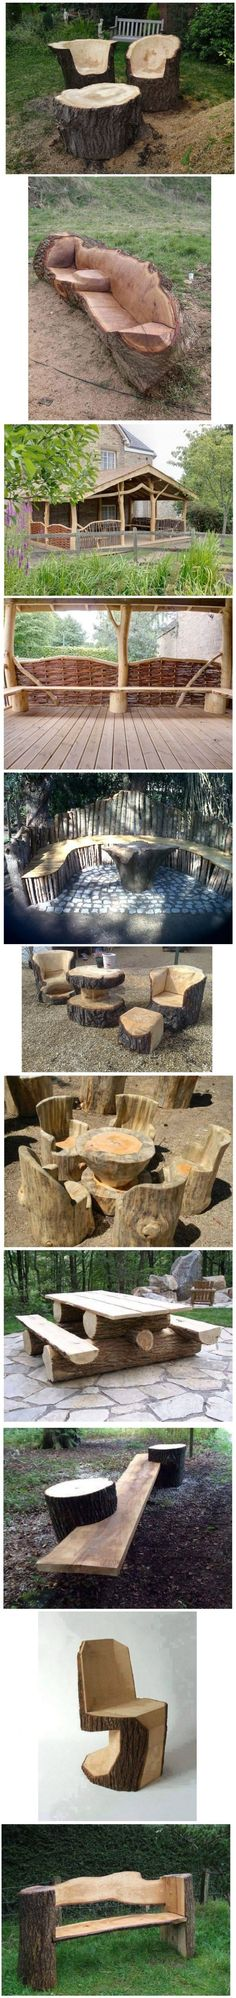 Beautiful Rustic Pieces of Furniture for the House or Garden   WoodworkerZ.com